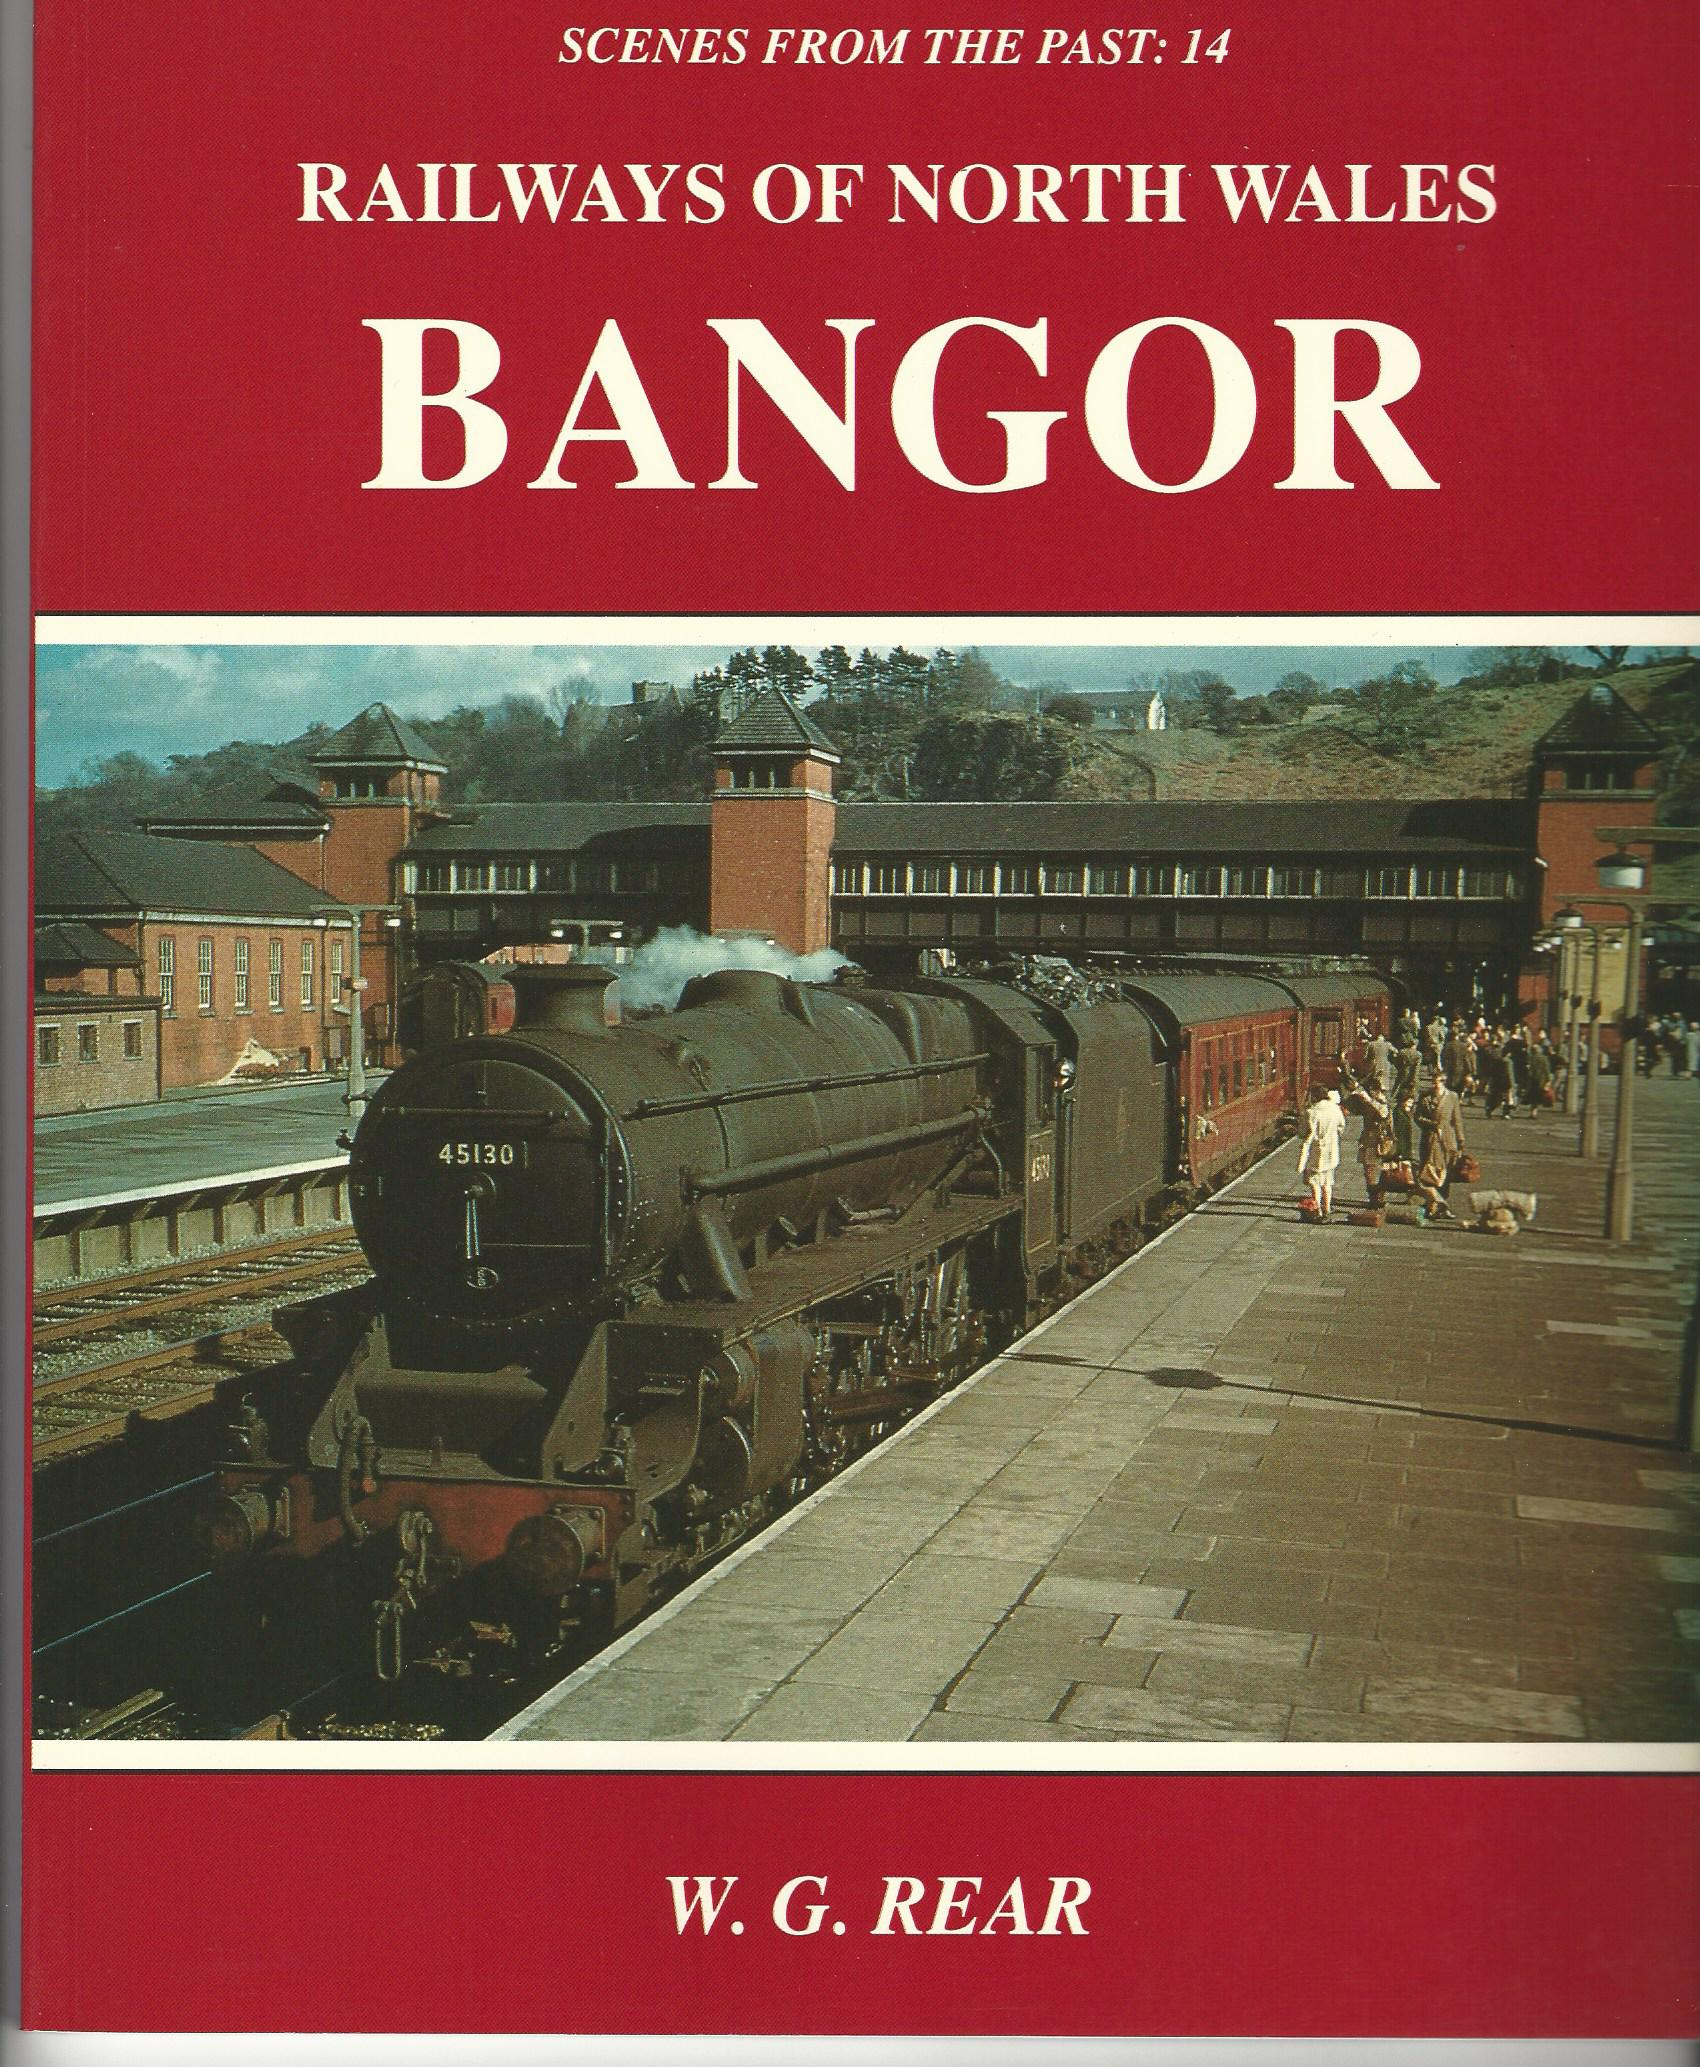 Image for Railways of North Wales: Bangor (Scenes from the Past)